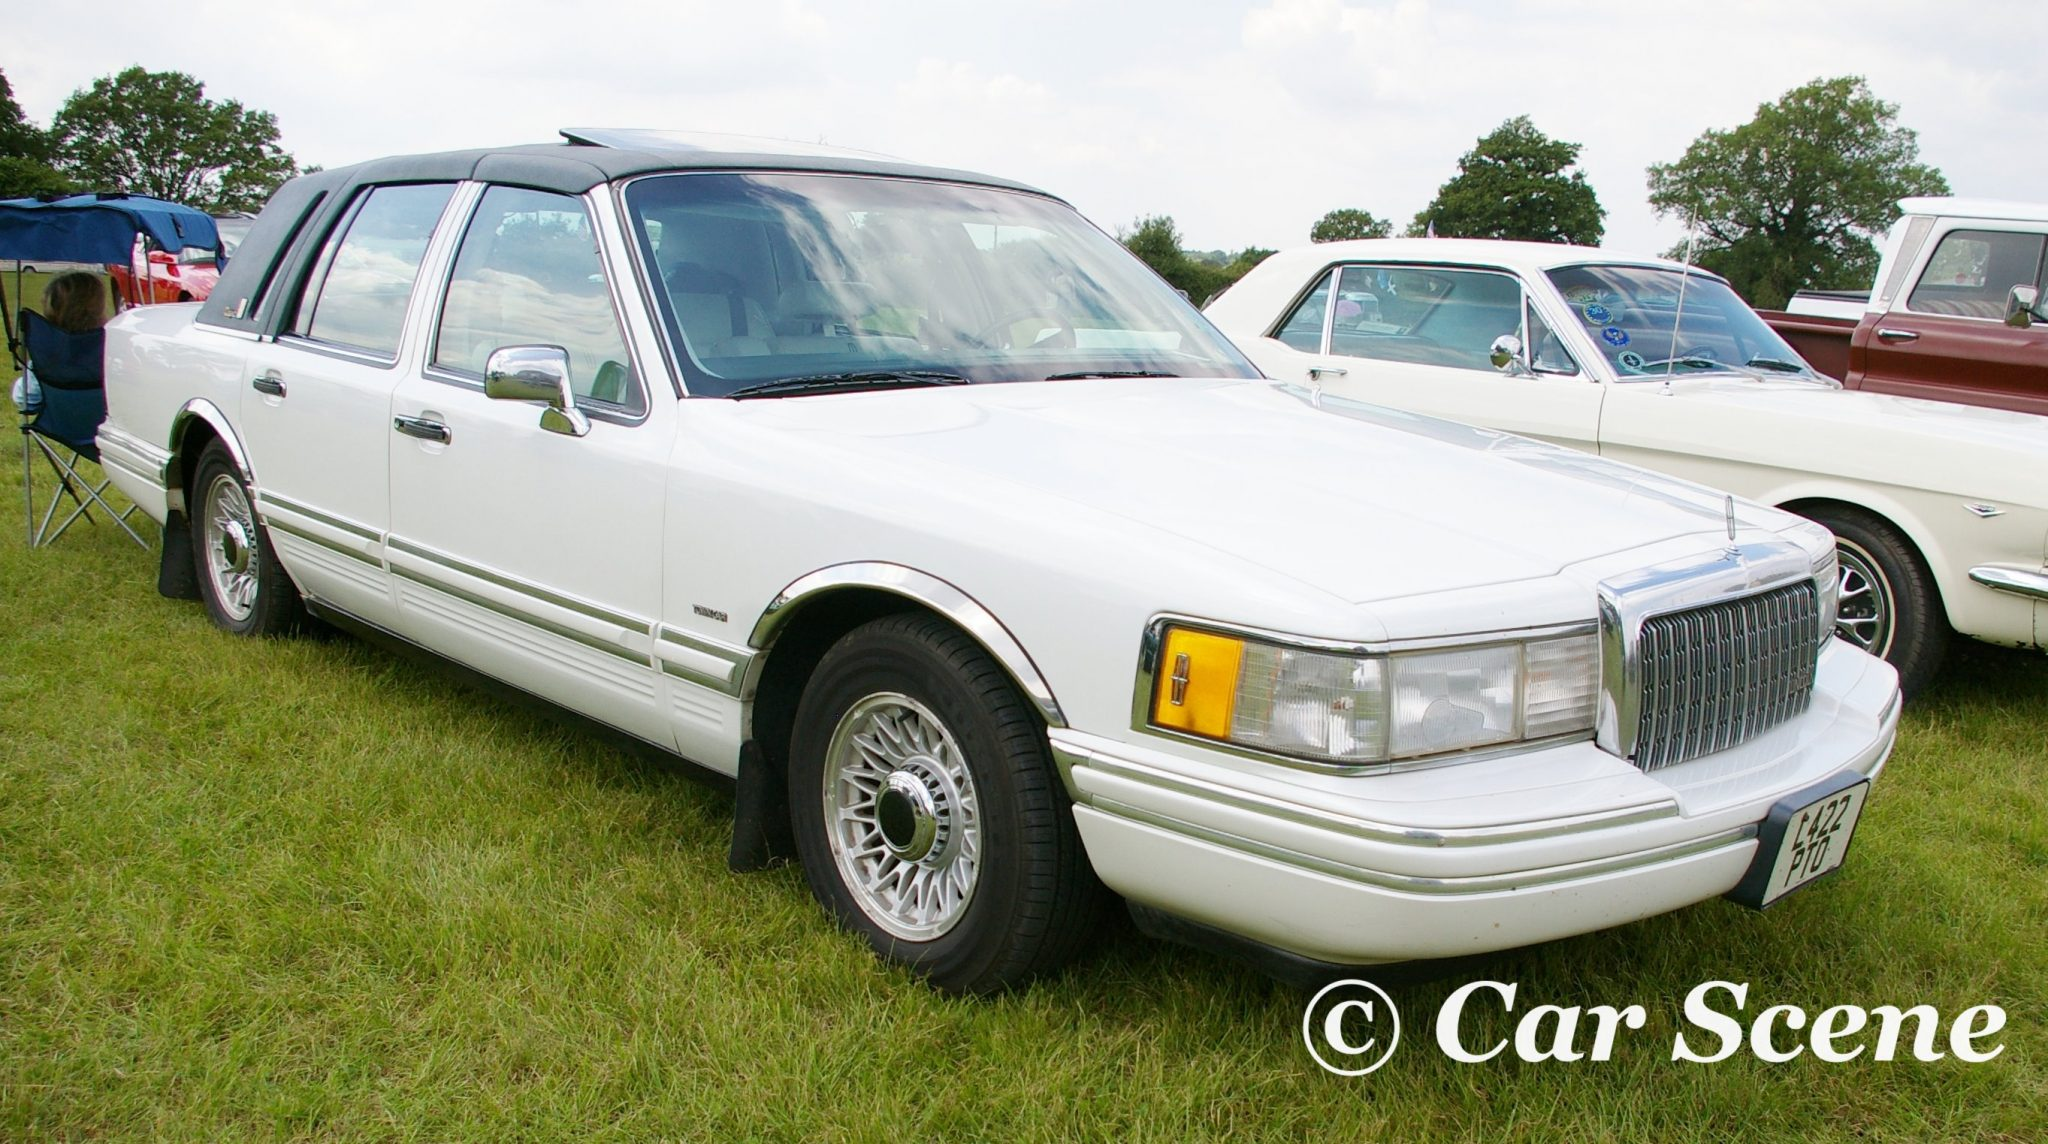 Mid 1980s Lincoln Continental front three quarters view